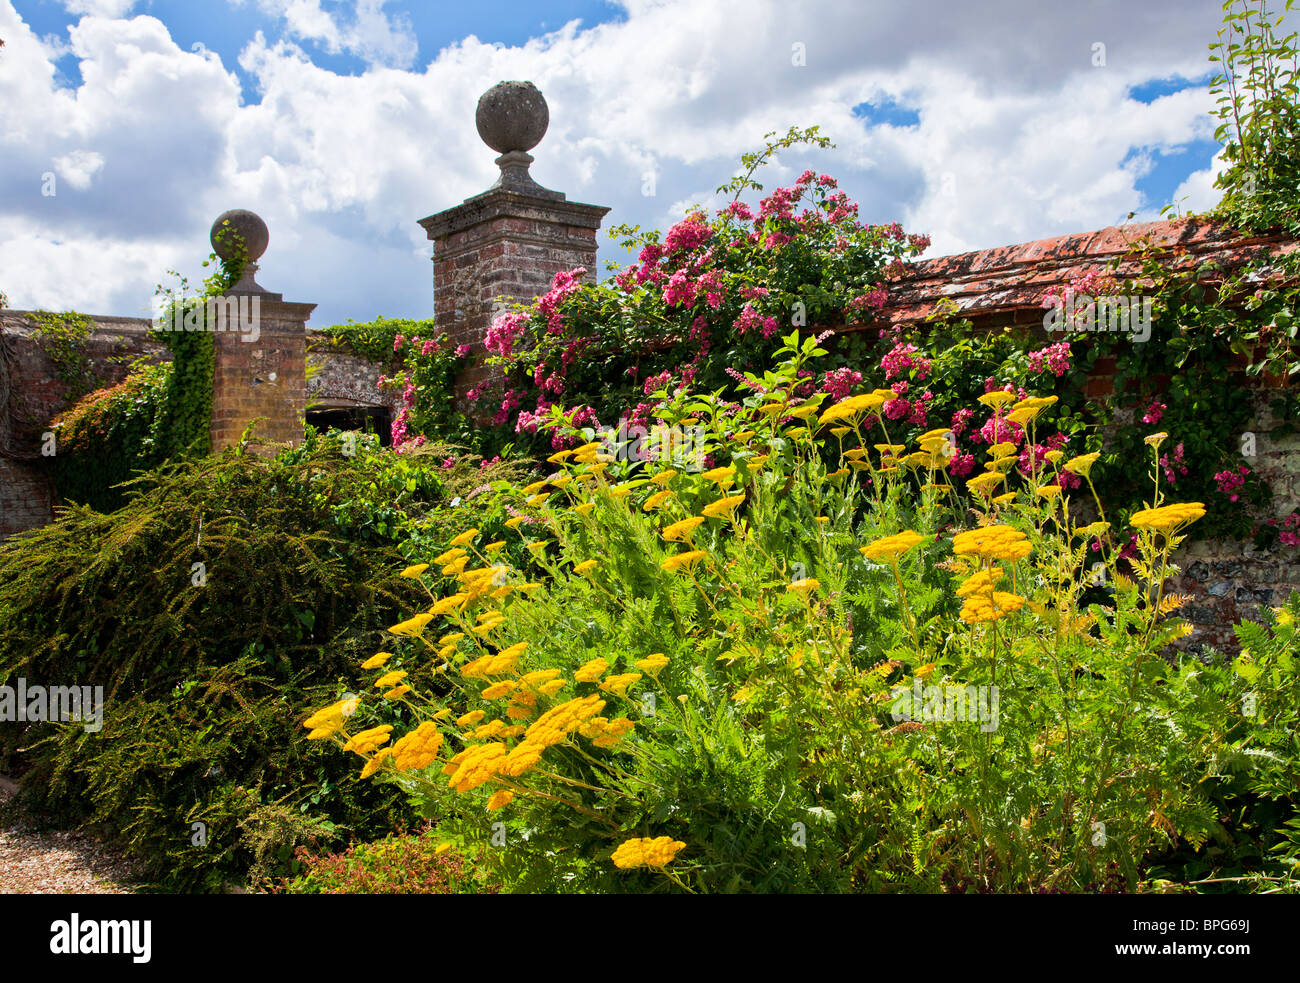 Herbaceous Perennial Border Of Summer Flowers In A Walled English